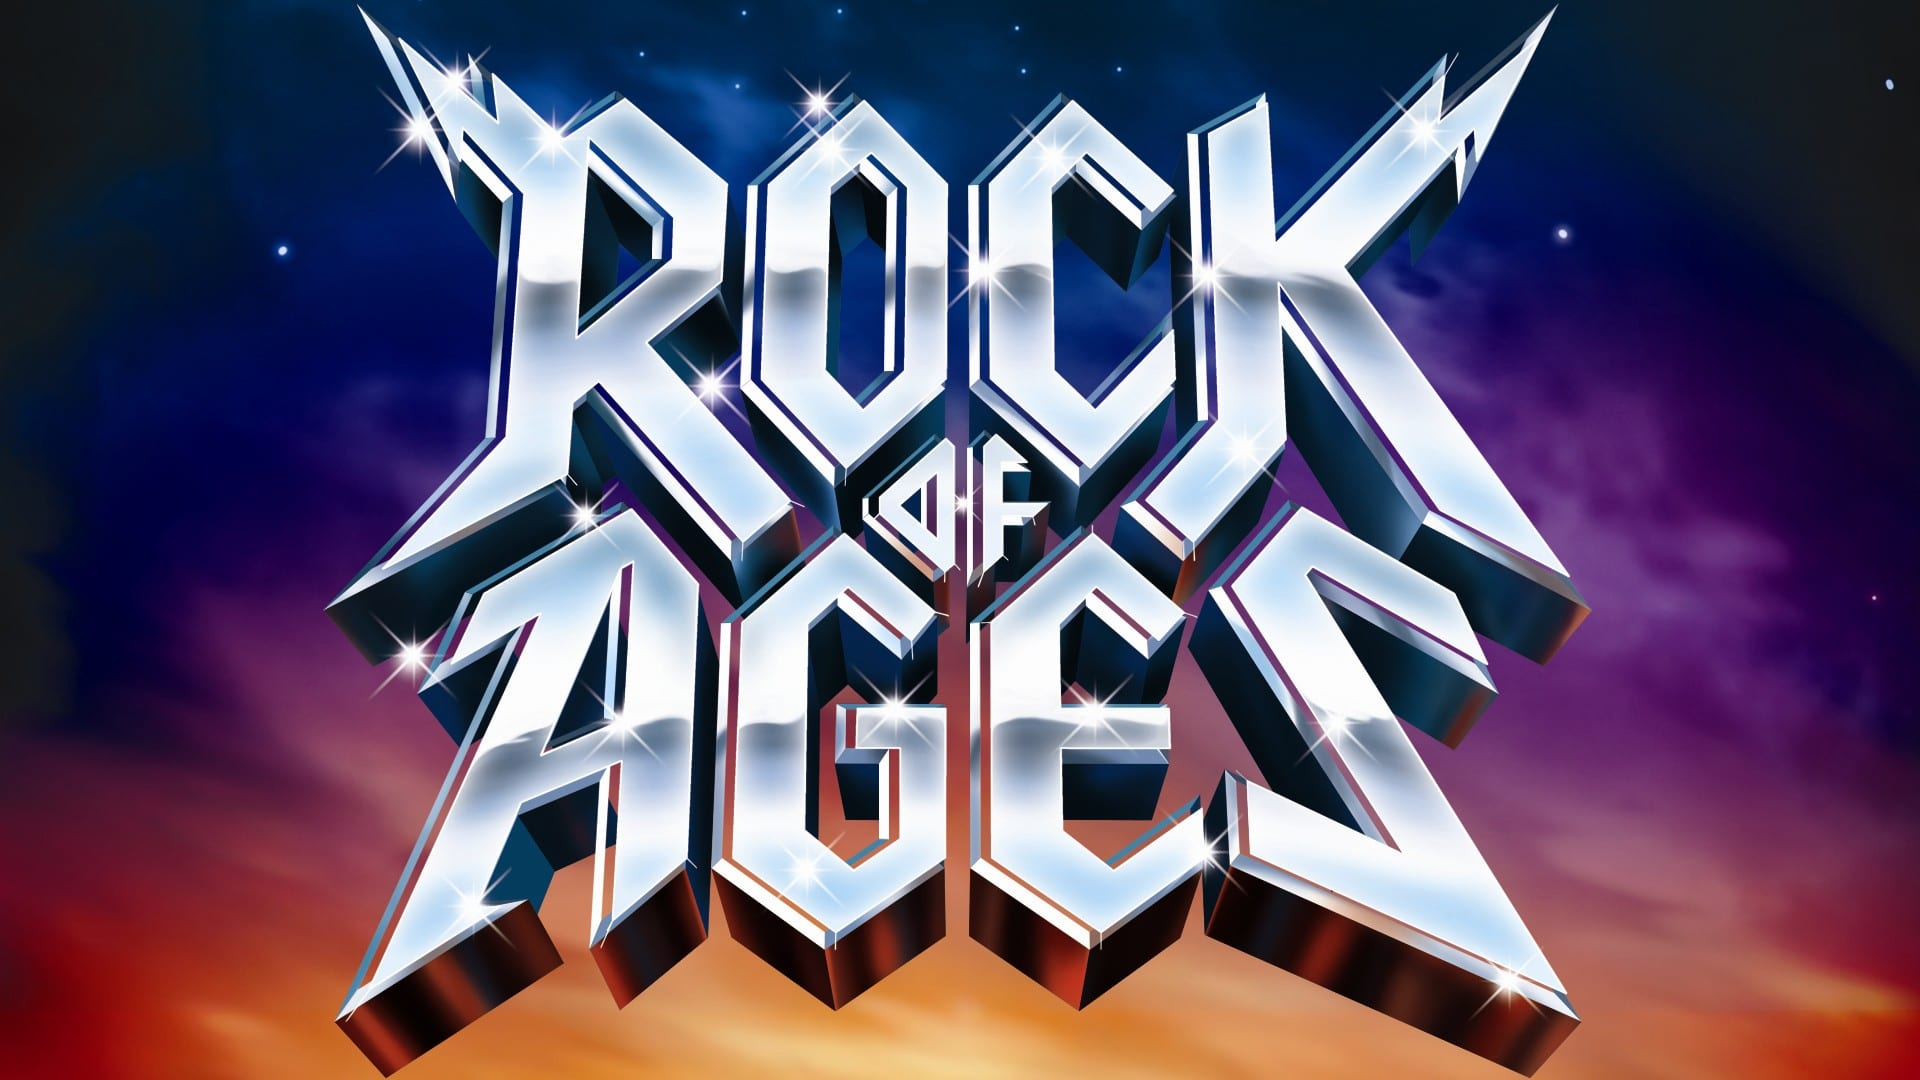 rock of ages at firehouse arts center - visit tri-valley